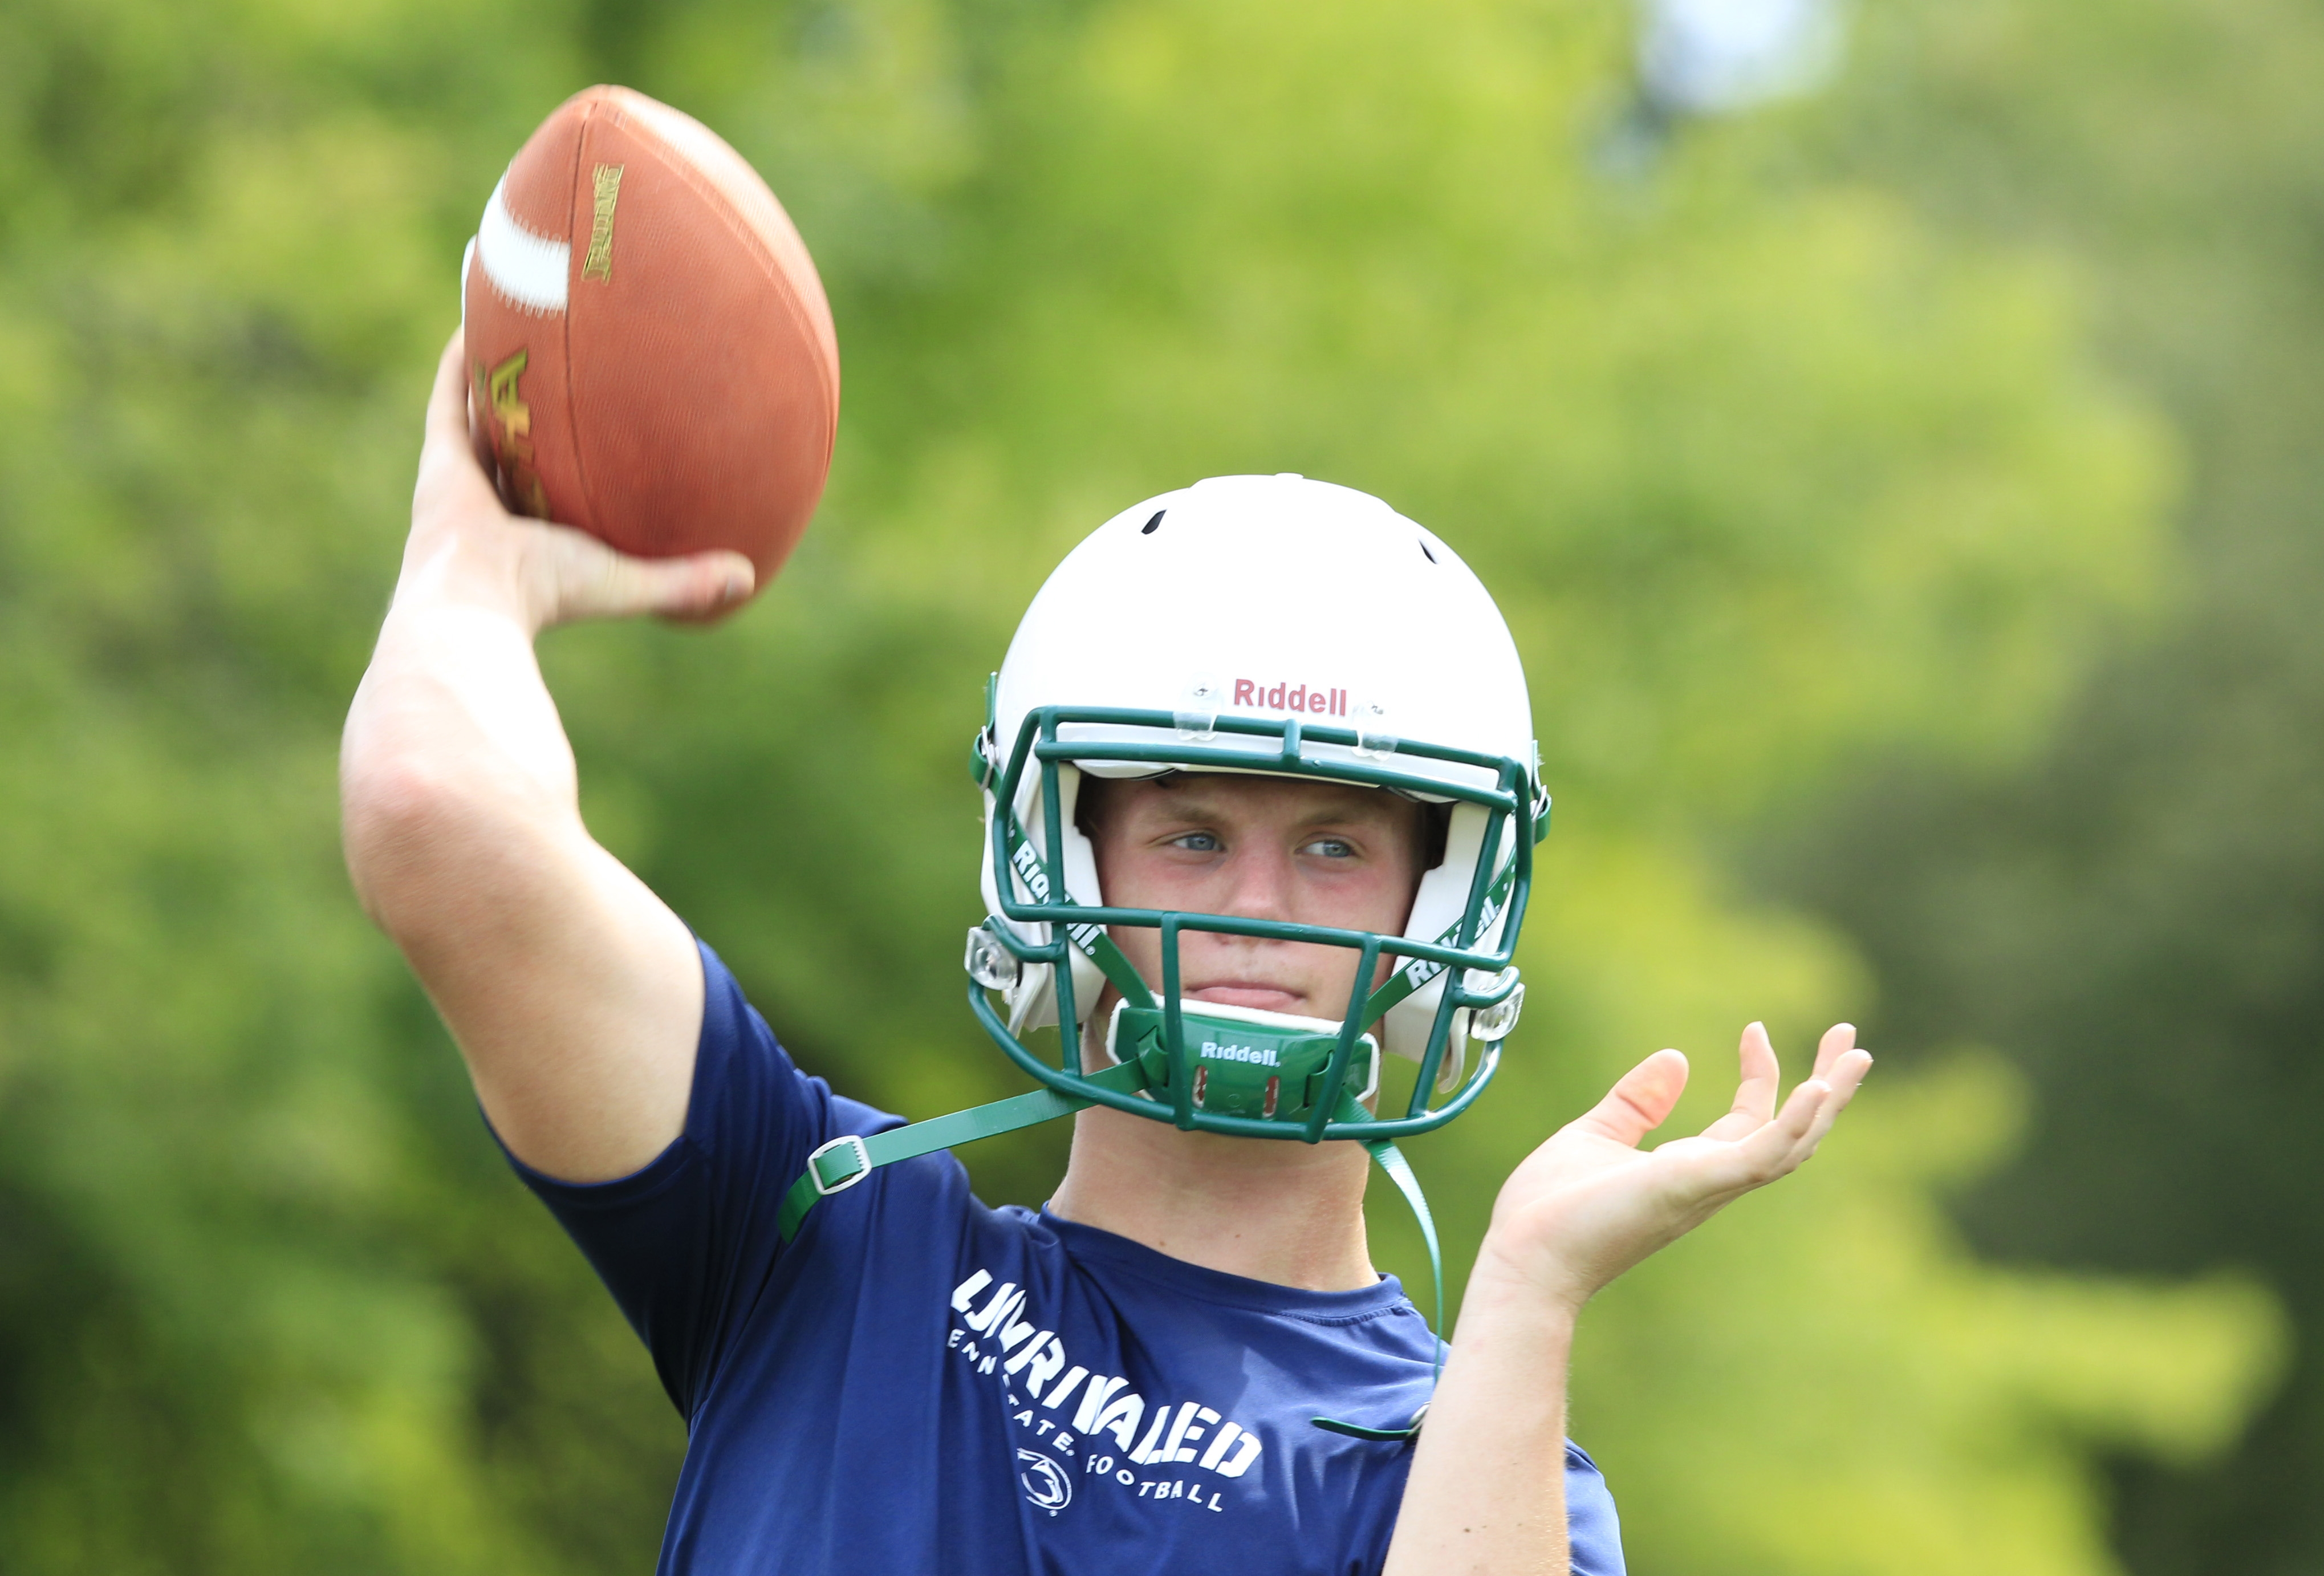 Timon quarterback Matt Myers is coming off a season in which he earned second team All-Western New York. (Harry Scull Jr./Buffalo News)